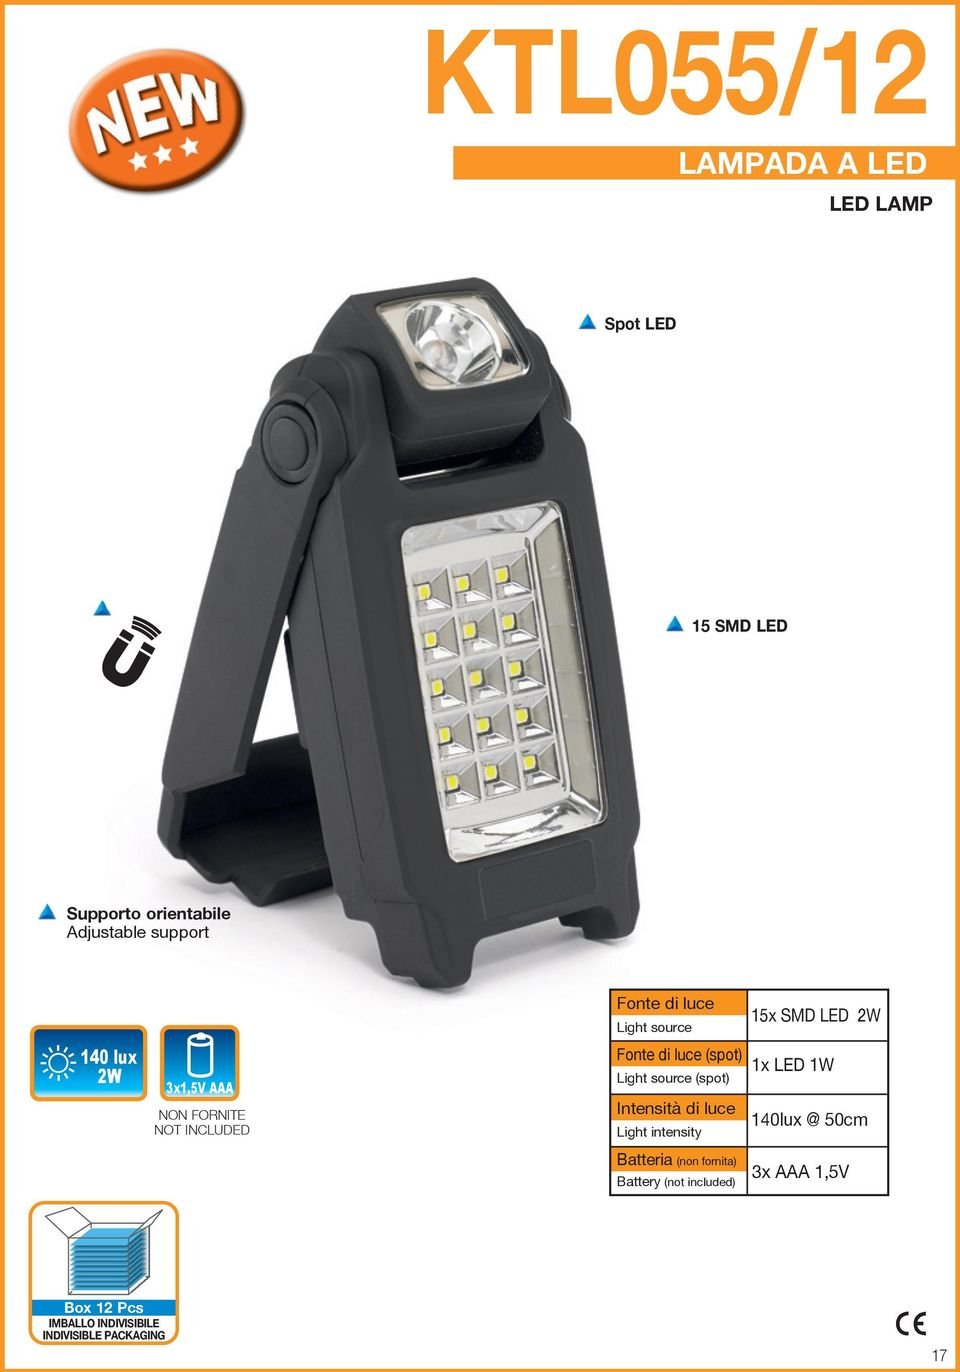 (spot) Light source (spot) Intensità di luce Light intensity 1x LED 1W 140lux @ 50cm Batteria (non